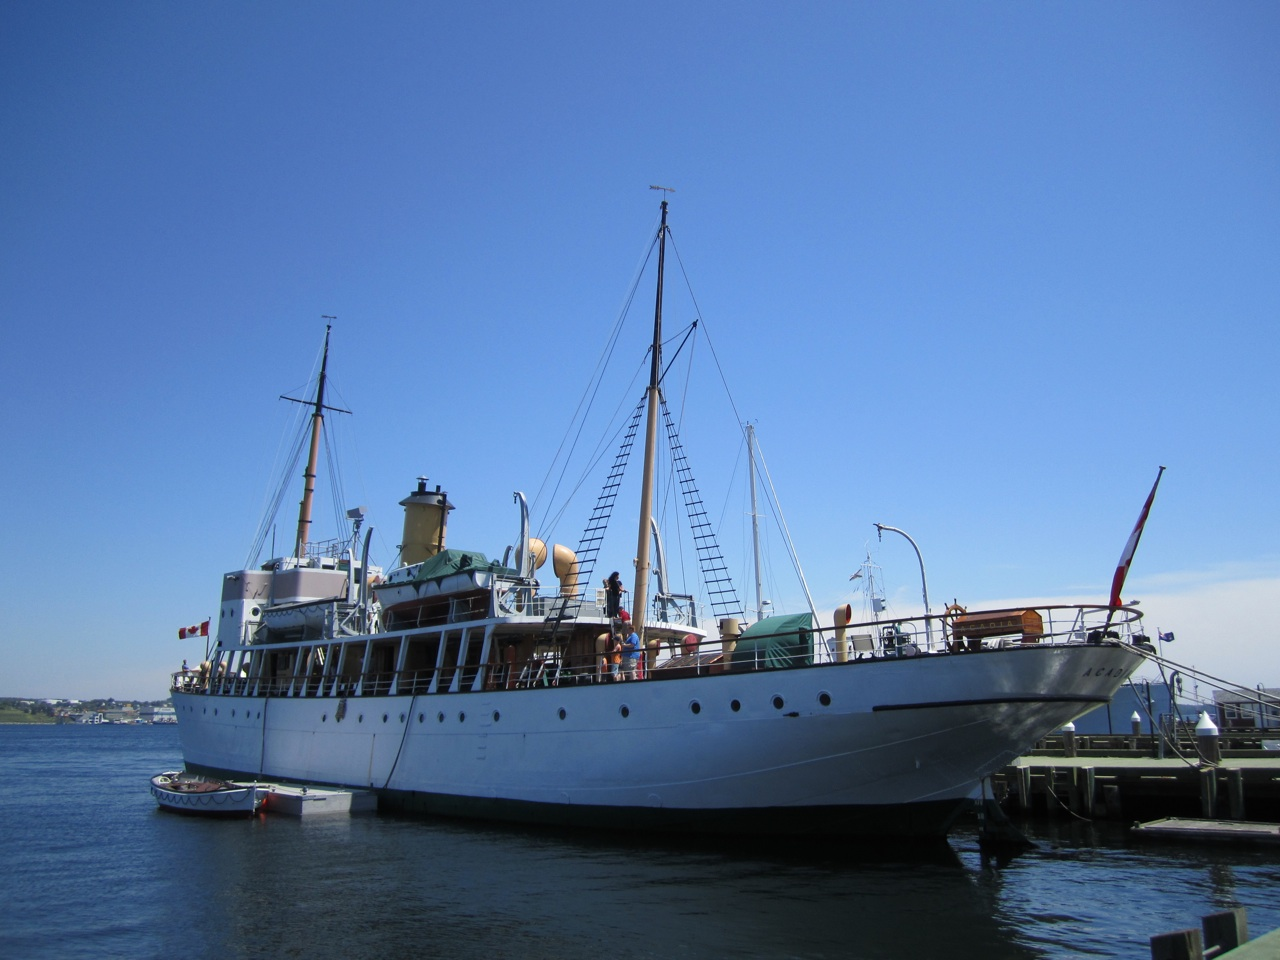 A Ship In The Harbor In Halifax